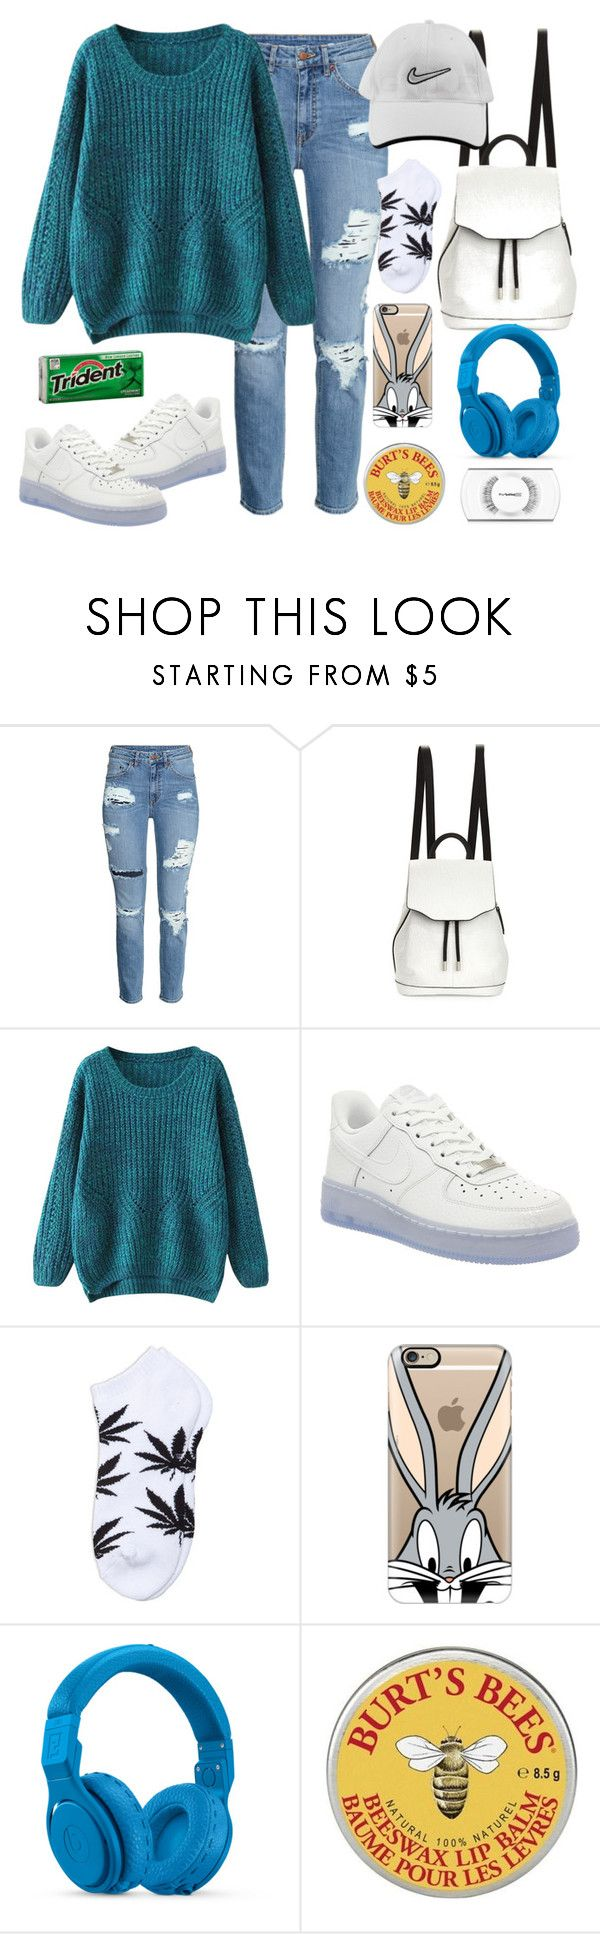 """""""Romantic Ft. Tiwa Savage By Korede Bello #WhatsTodaysJam"""" by cissylion ❤ liked on Polyvore featuring H&M, rag & bone, NIKE, Casetify, Beats by Dr. Dre, Burt's Bees and MAC Cosmetics"""